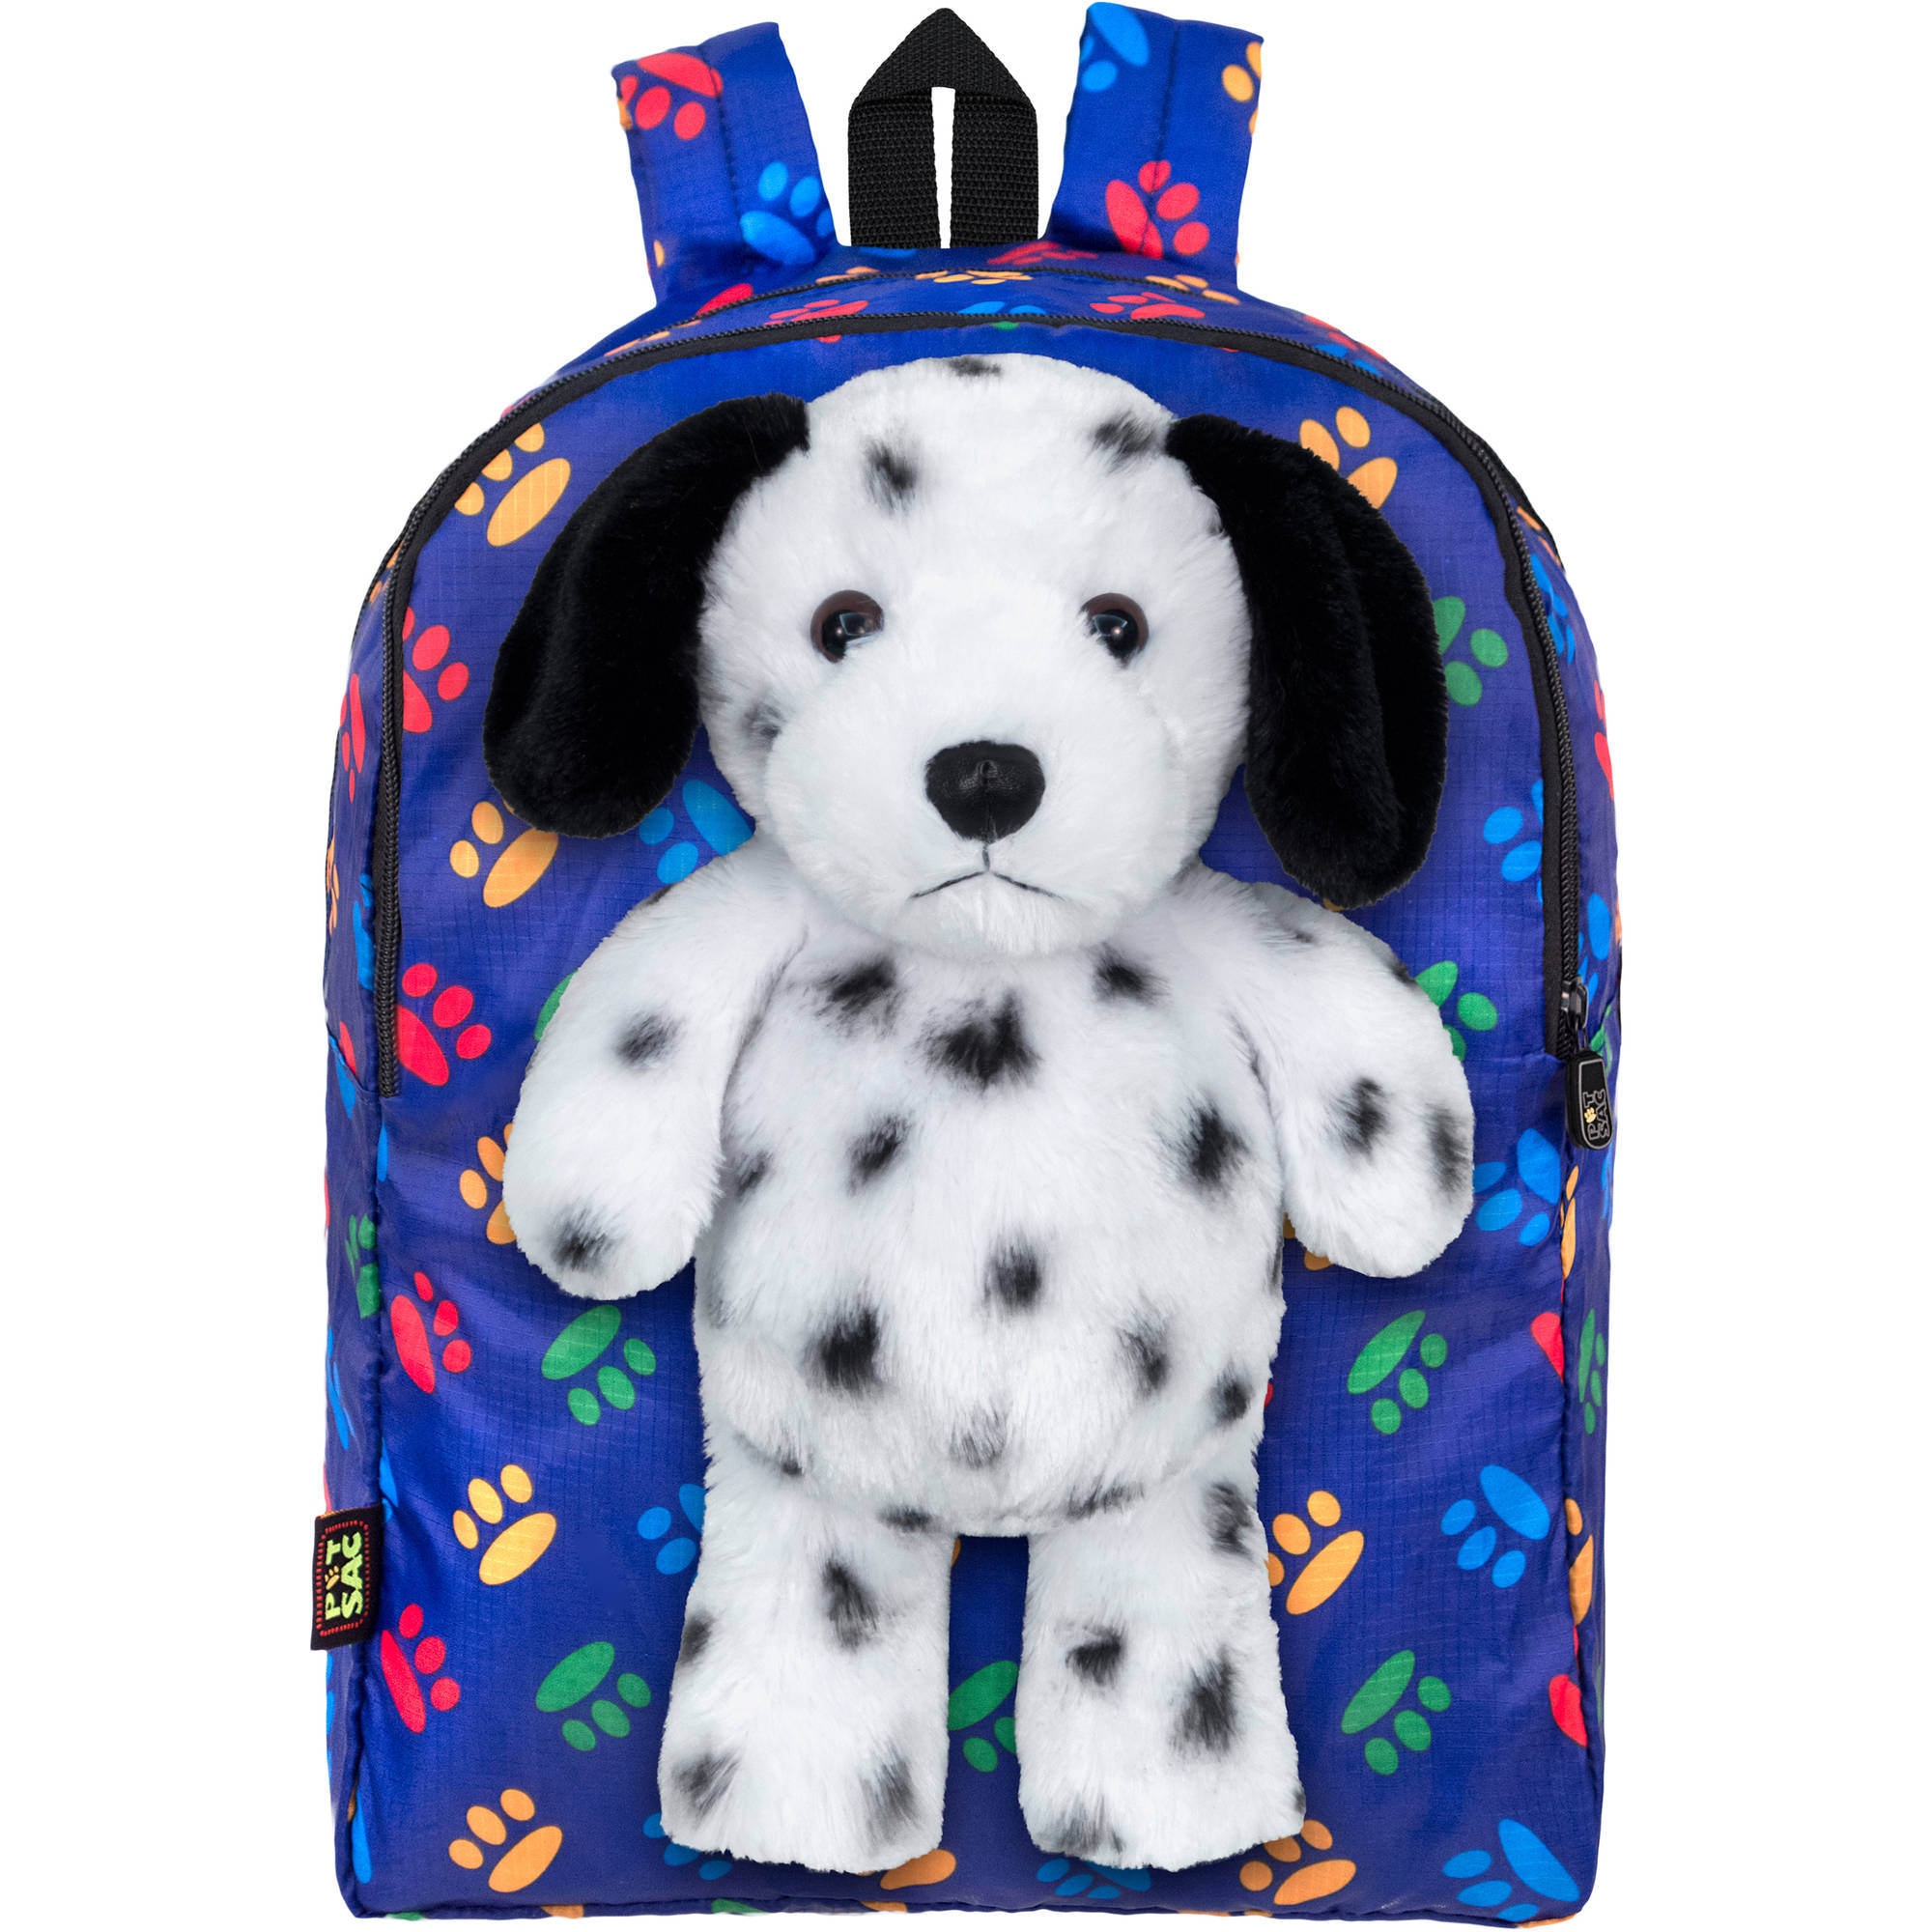 PetSac Spike the Dalmatian with Blue Paw Print Backpack